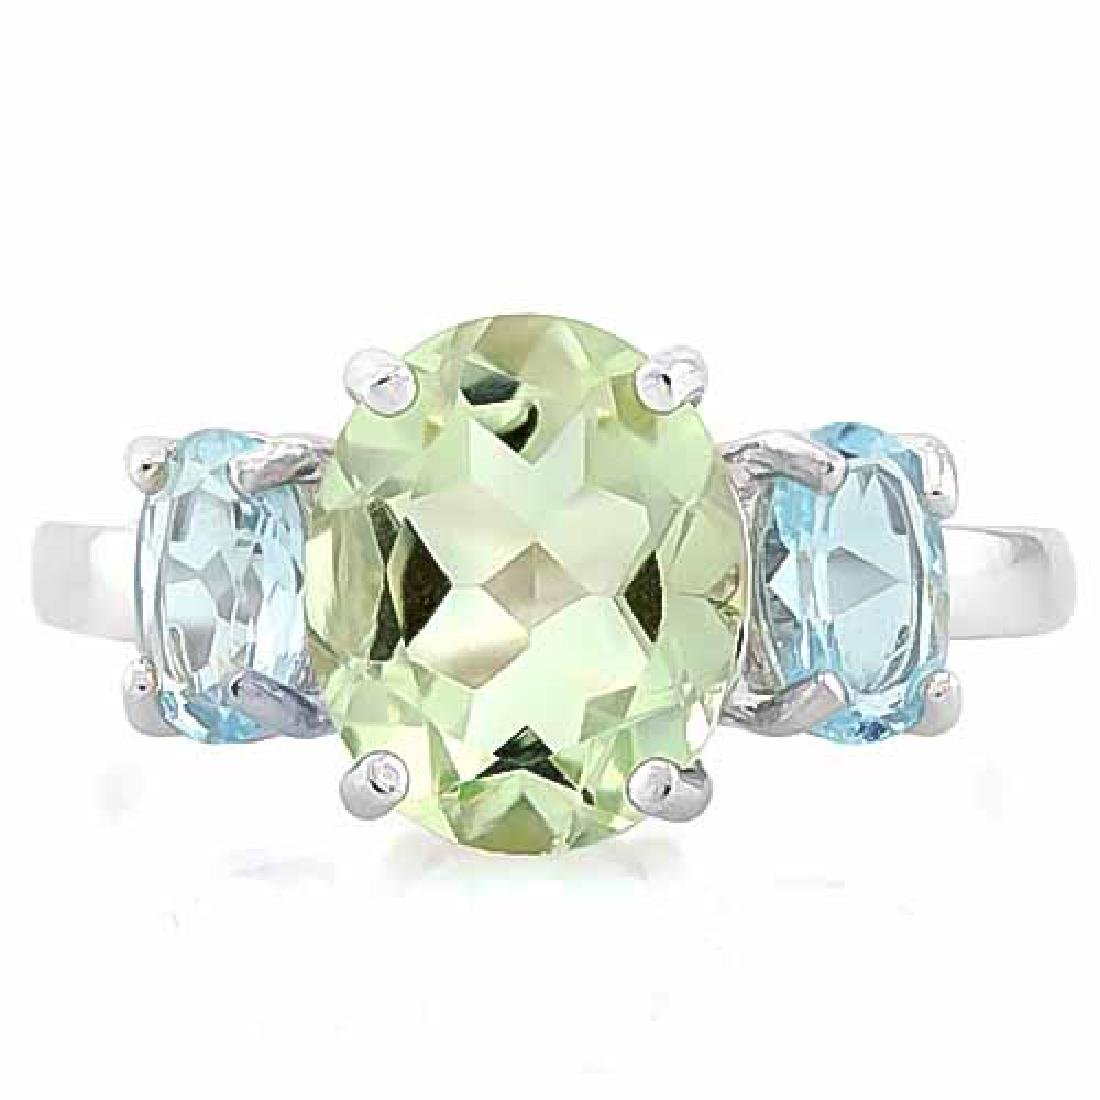 2 1/3 CARAT GREEN AMETHYST & 2 CARAT BABY SWISS BLUE TO